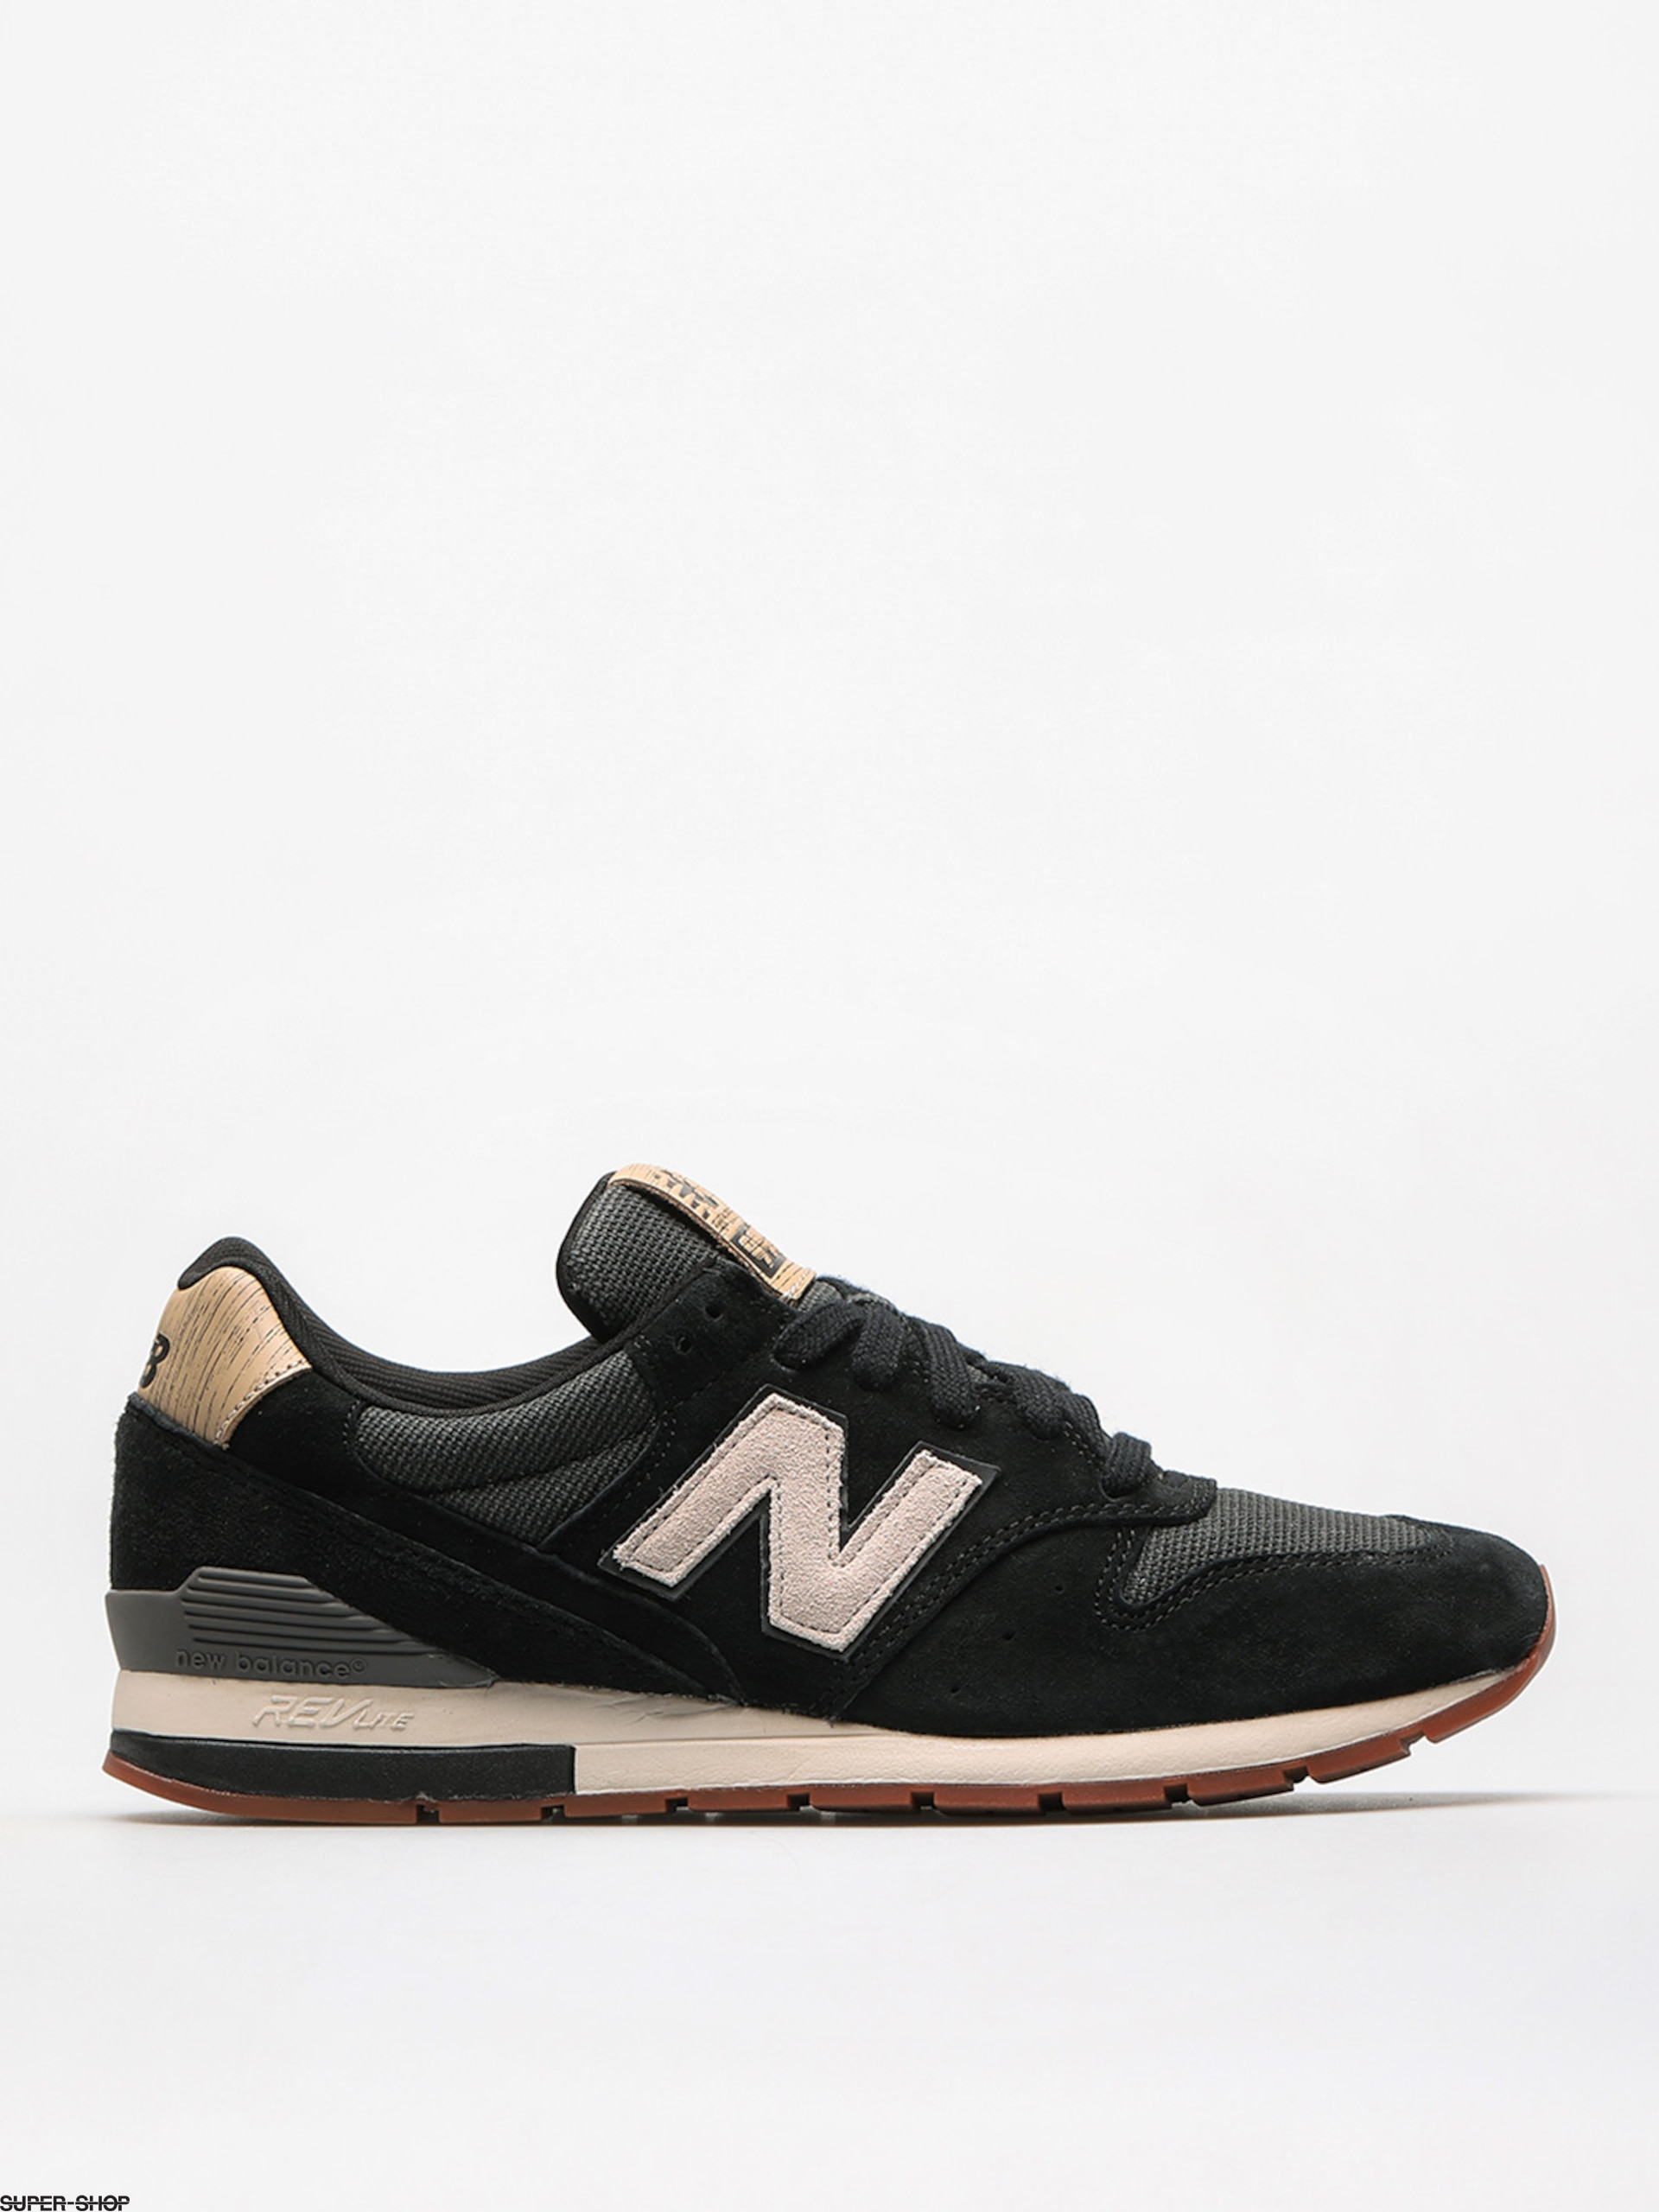 New Balance Shoes 996